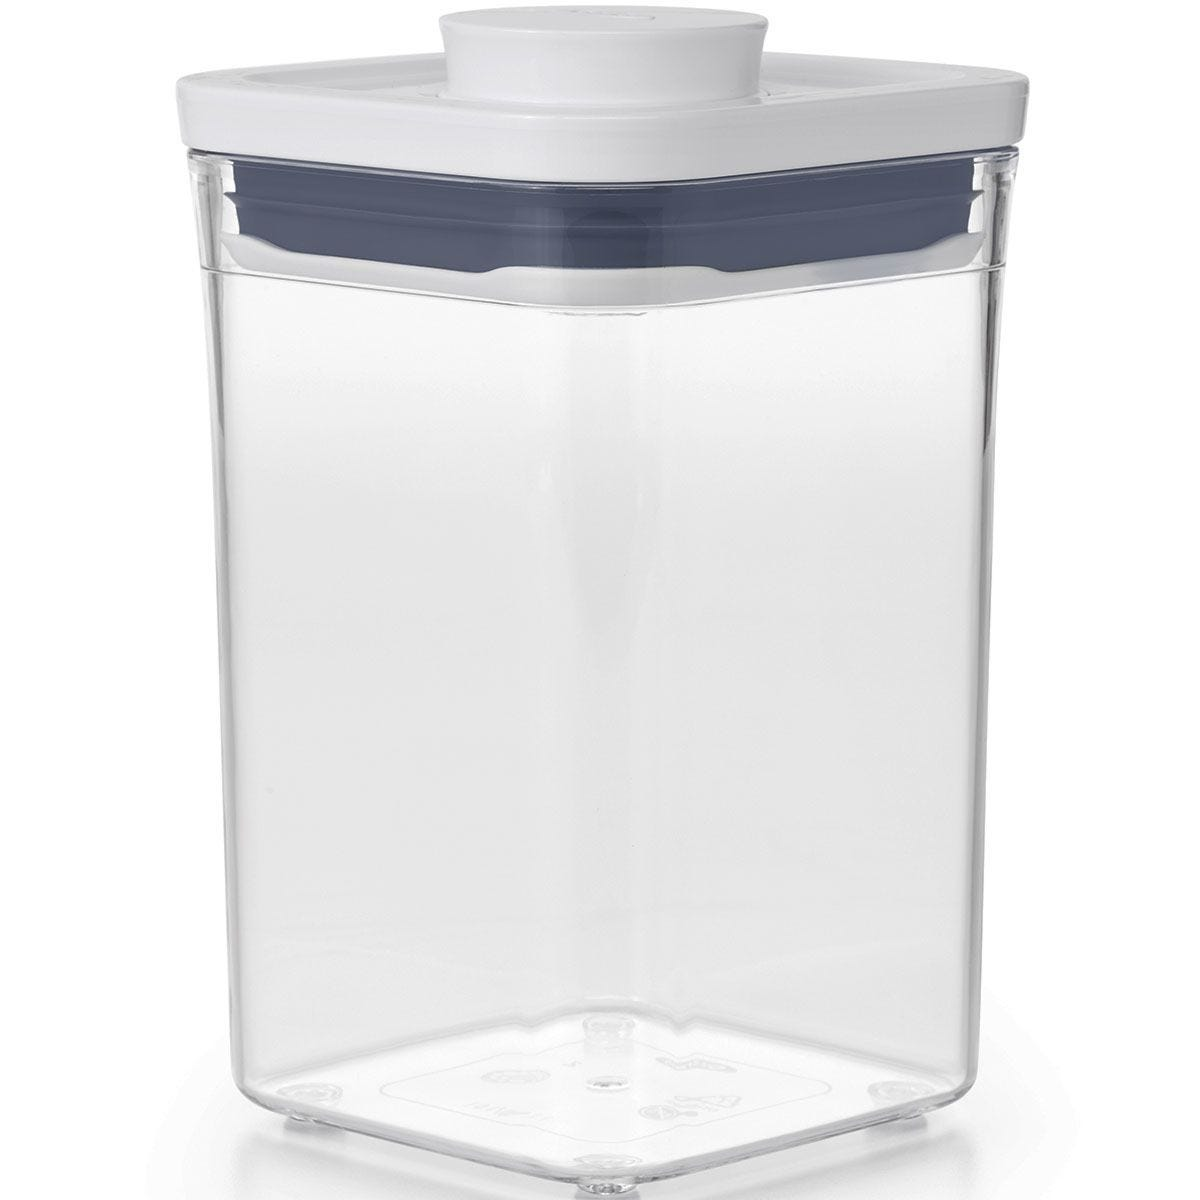 Oxo Good Grips Pop 2.0 Small Square Short Container - 1L